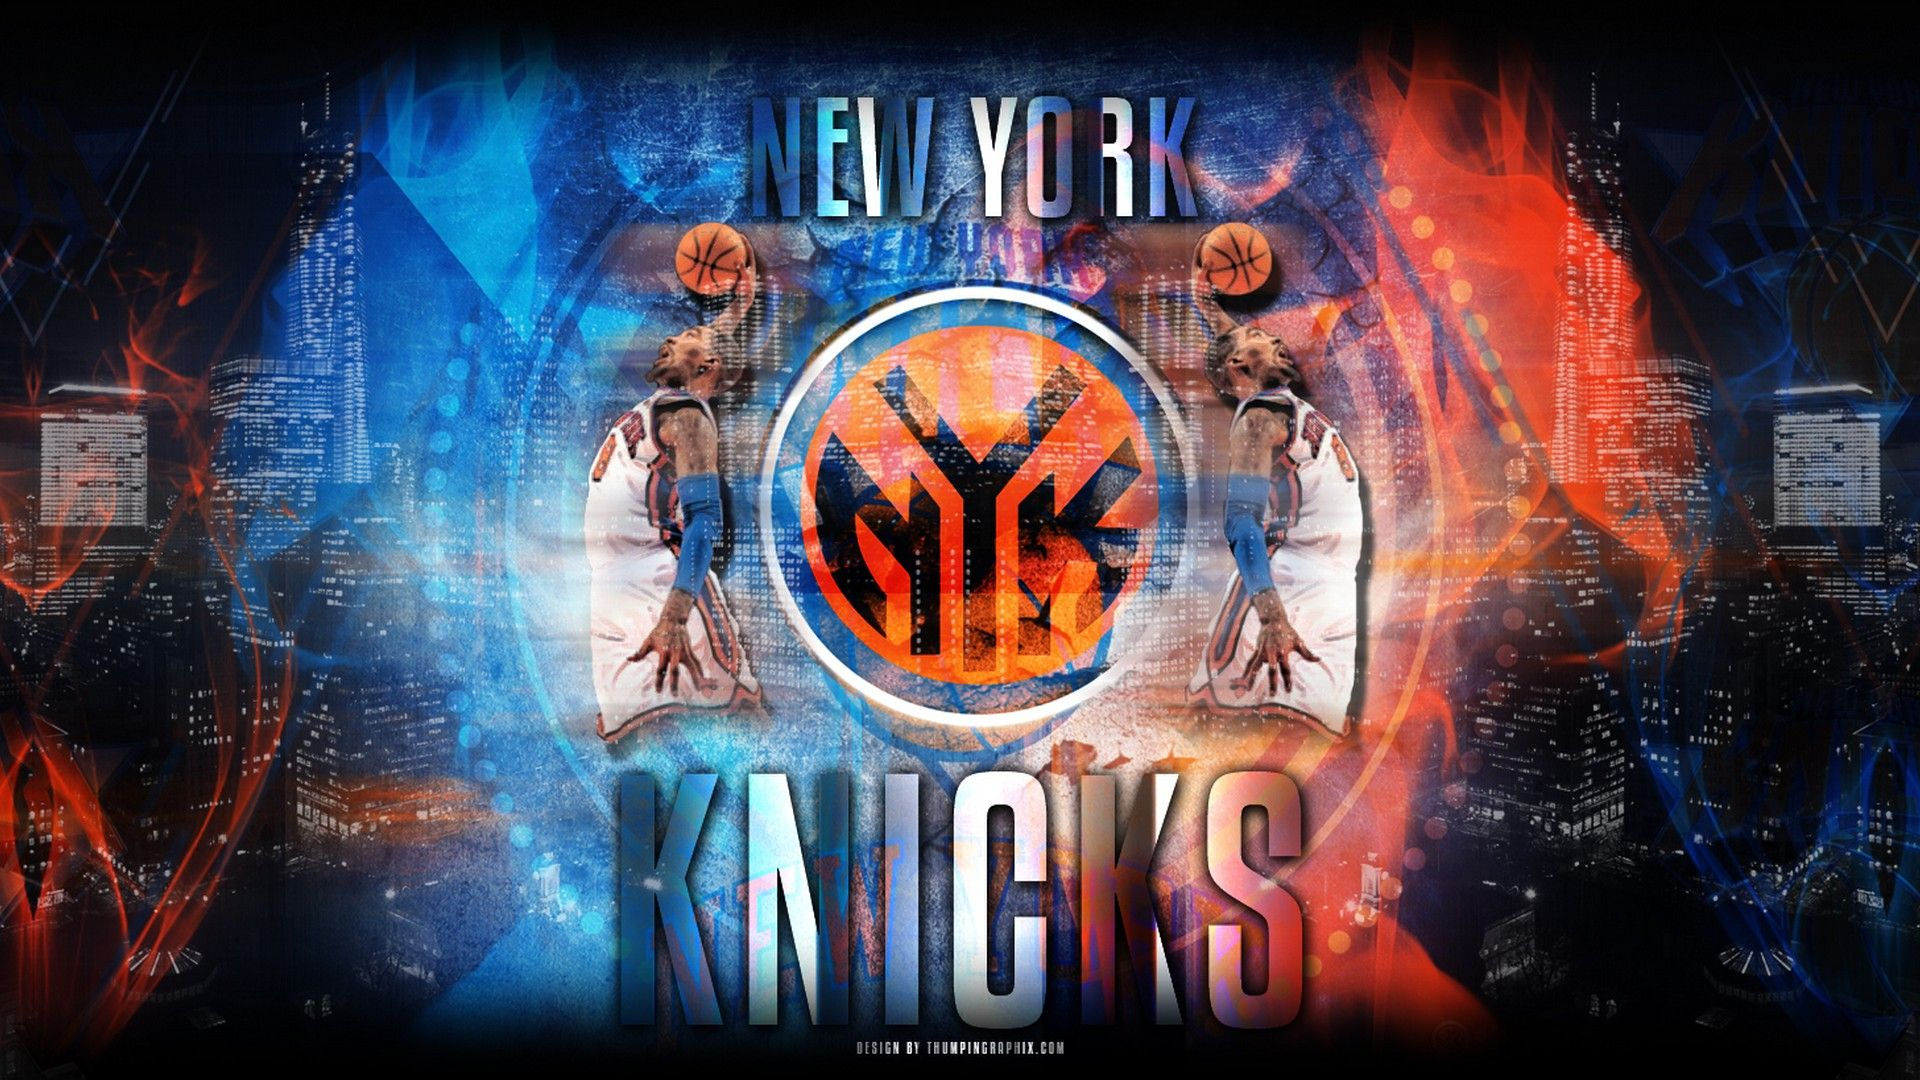 Hd Backgrounds Ny Knicks Is The Perfect High Quality Nba